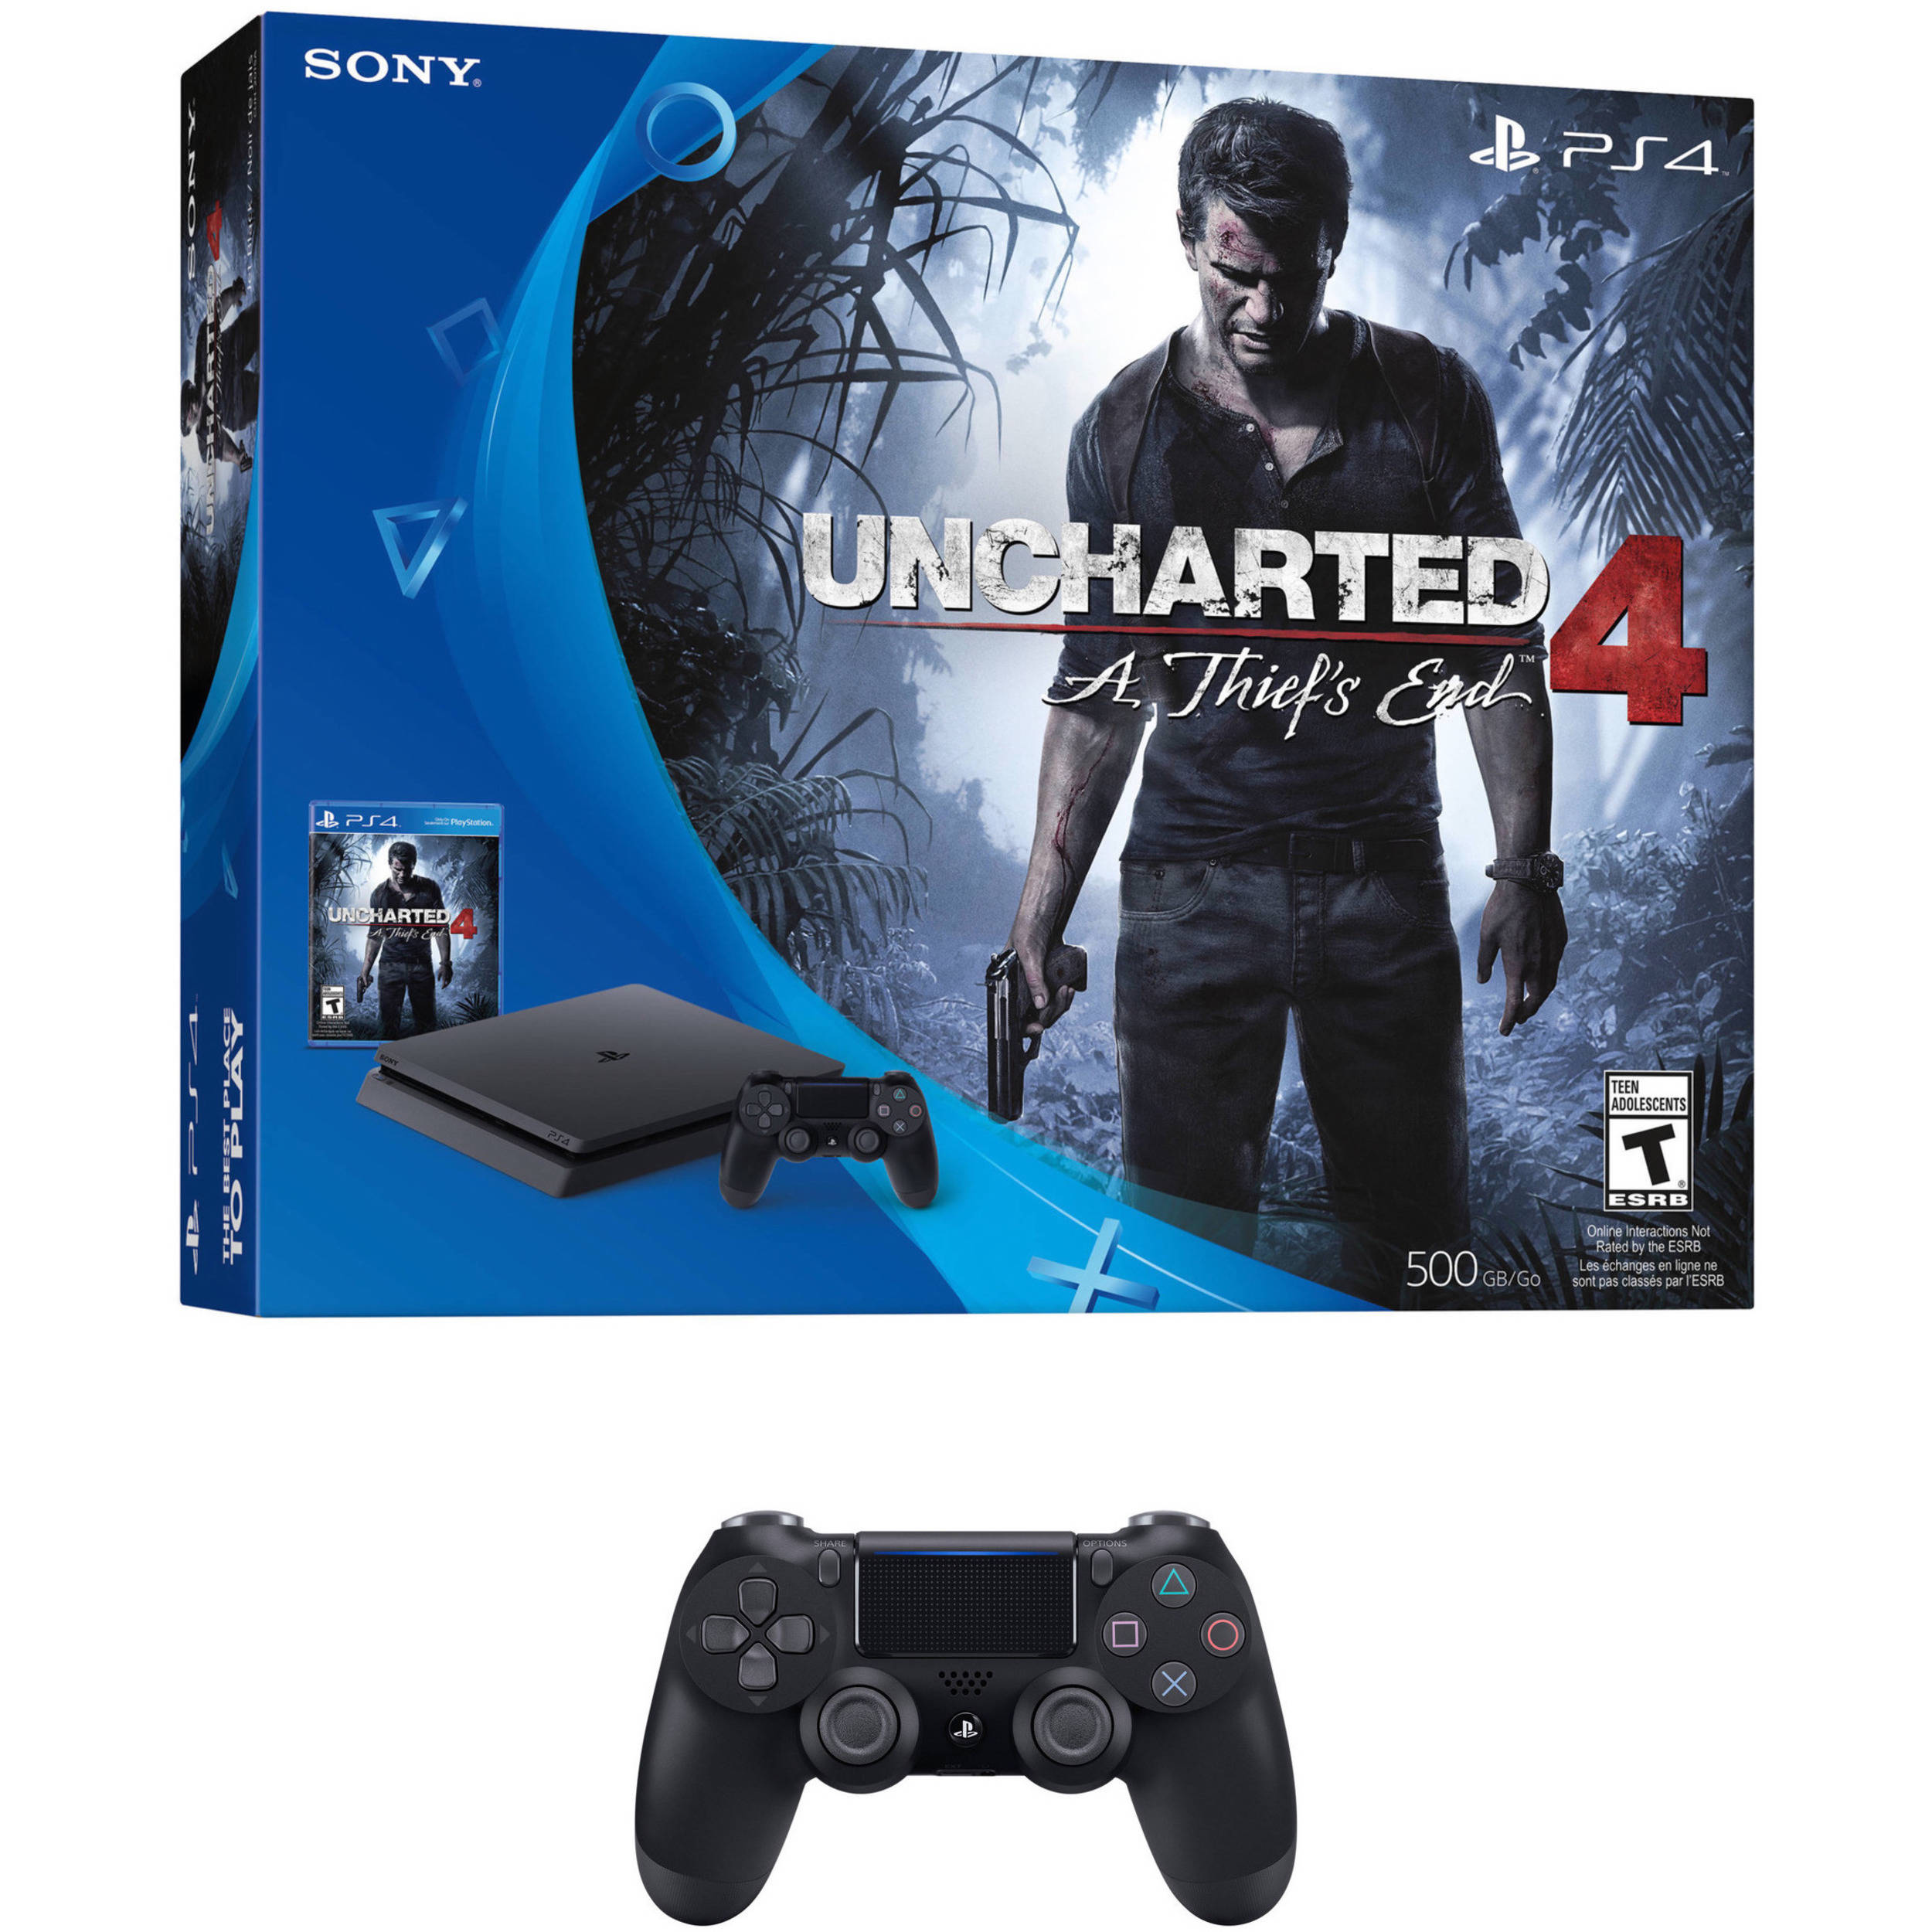 Sony Playstation 4 Slim Uncharted 4 Bundle With Additional B H